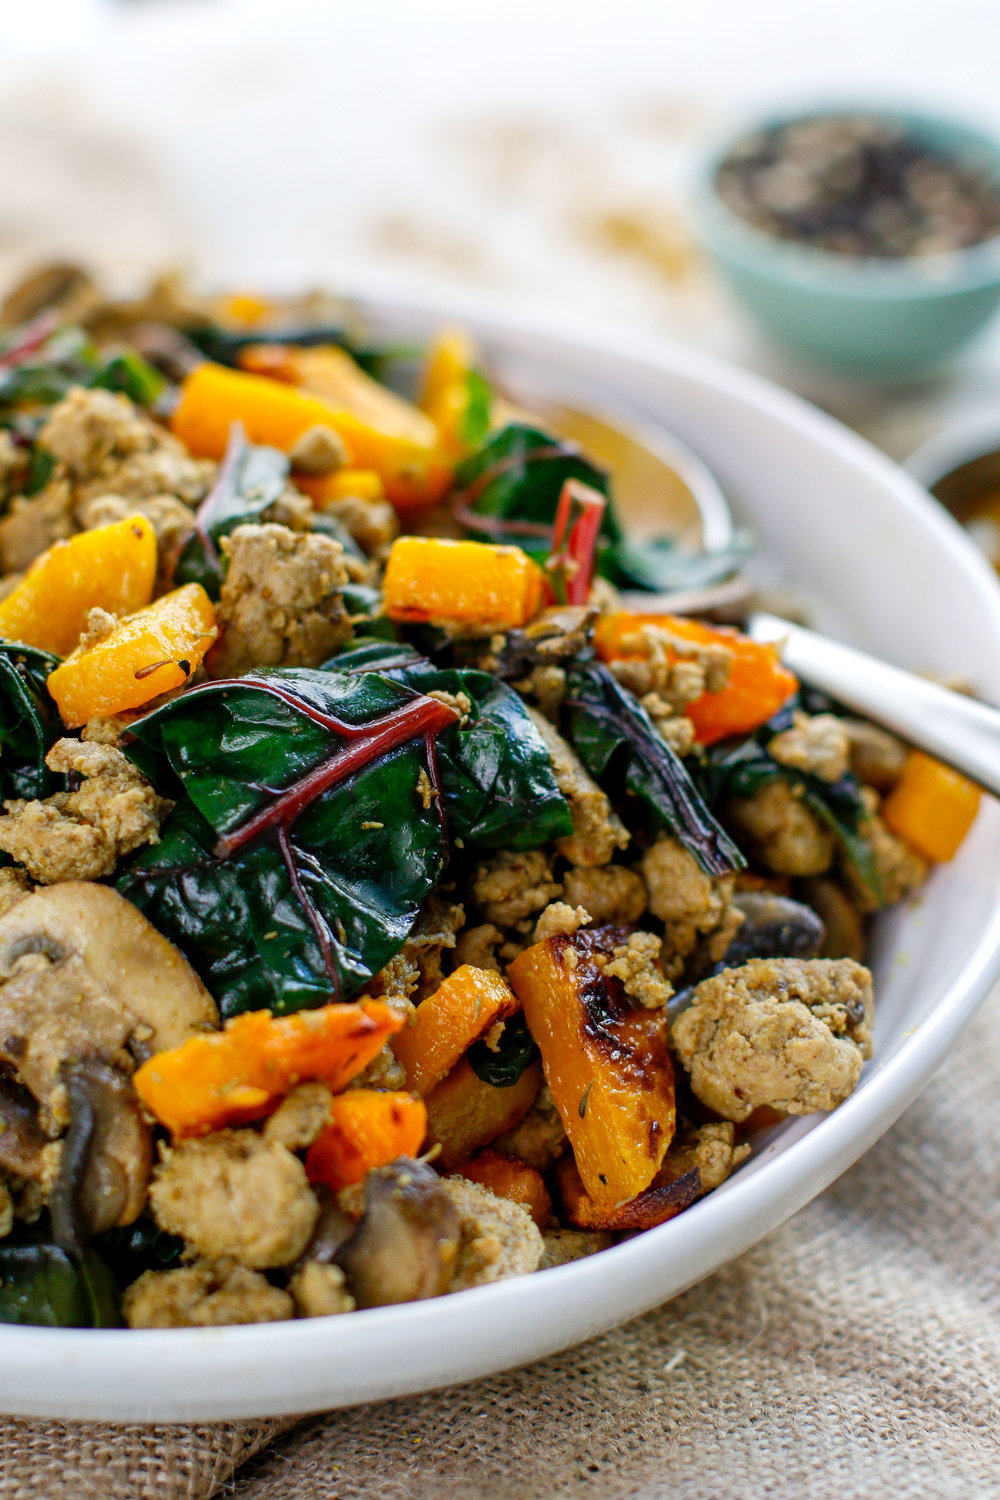 A healthy turkey breakfast butternut bowl filled with maple turkey and sautéed chard and mushrooms. Seasoned with an Ayurvedic spice blend and a hint of maple syrup—think, maple turkey sausage! #butternut #breakfast #healthy